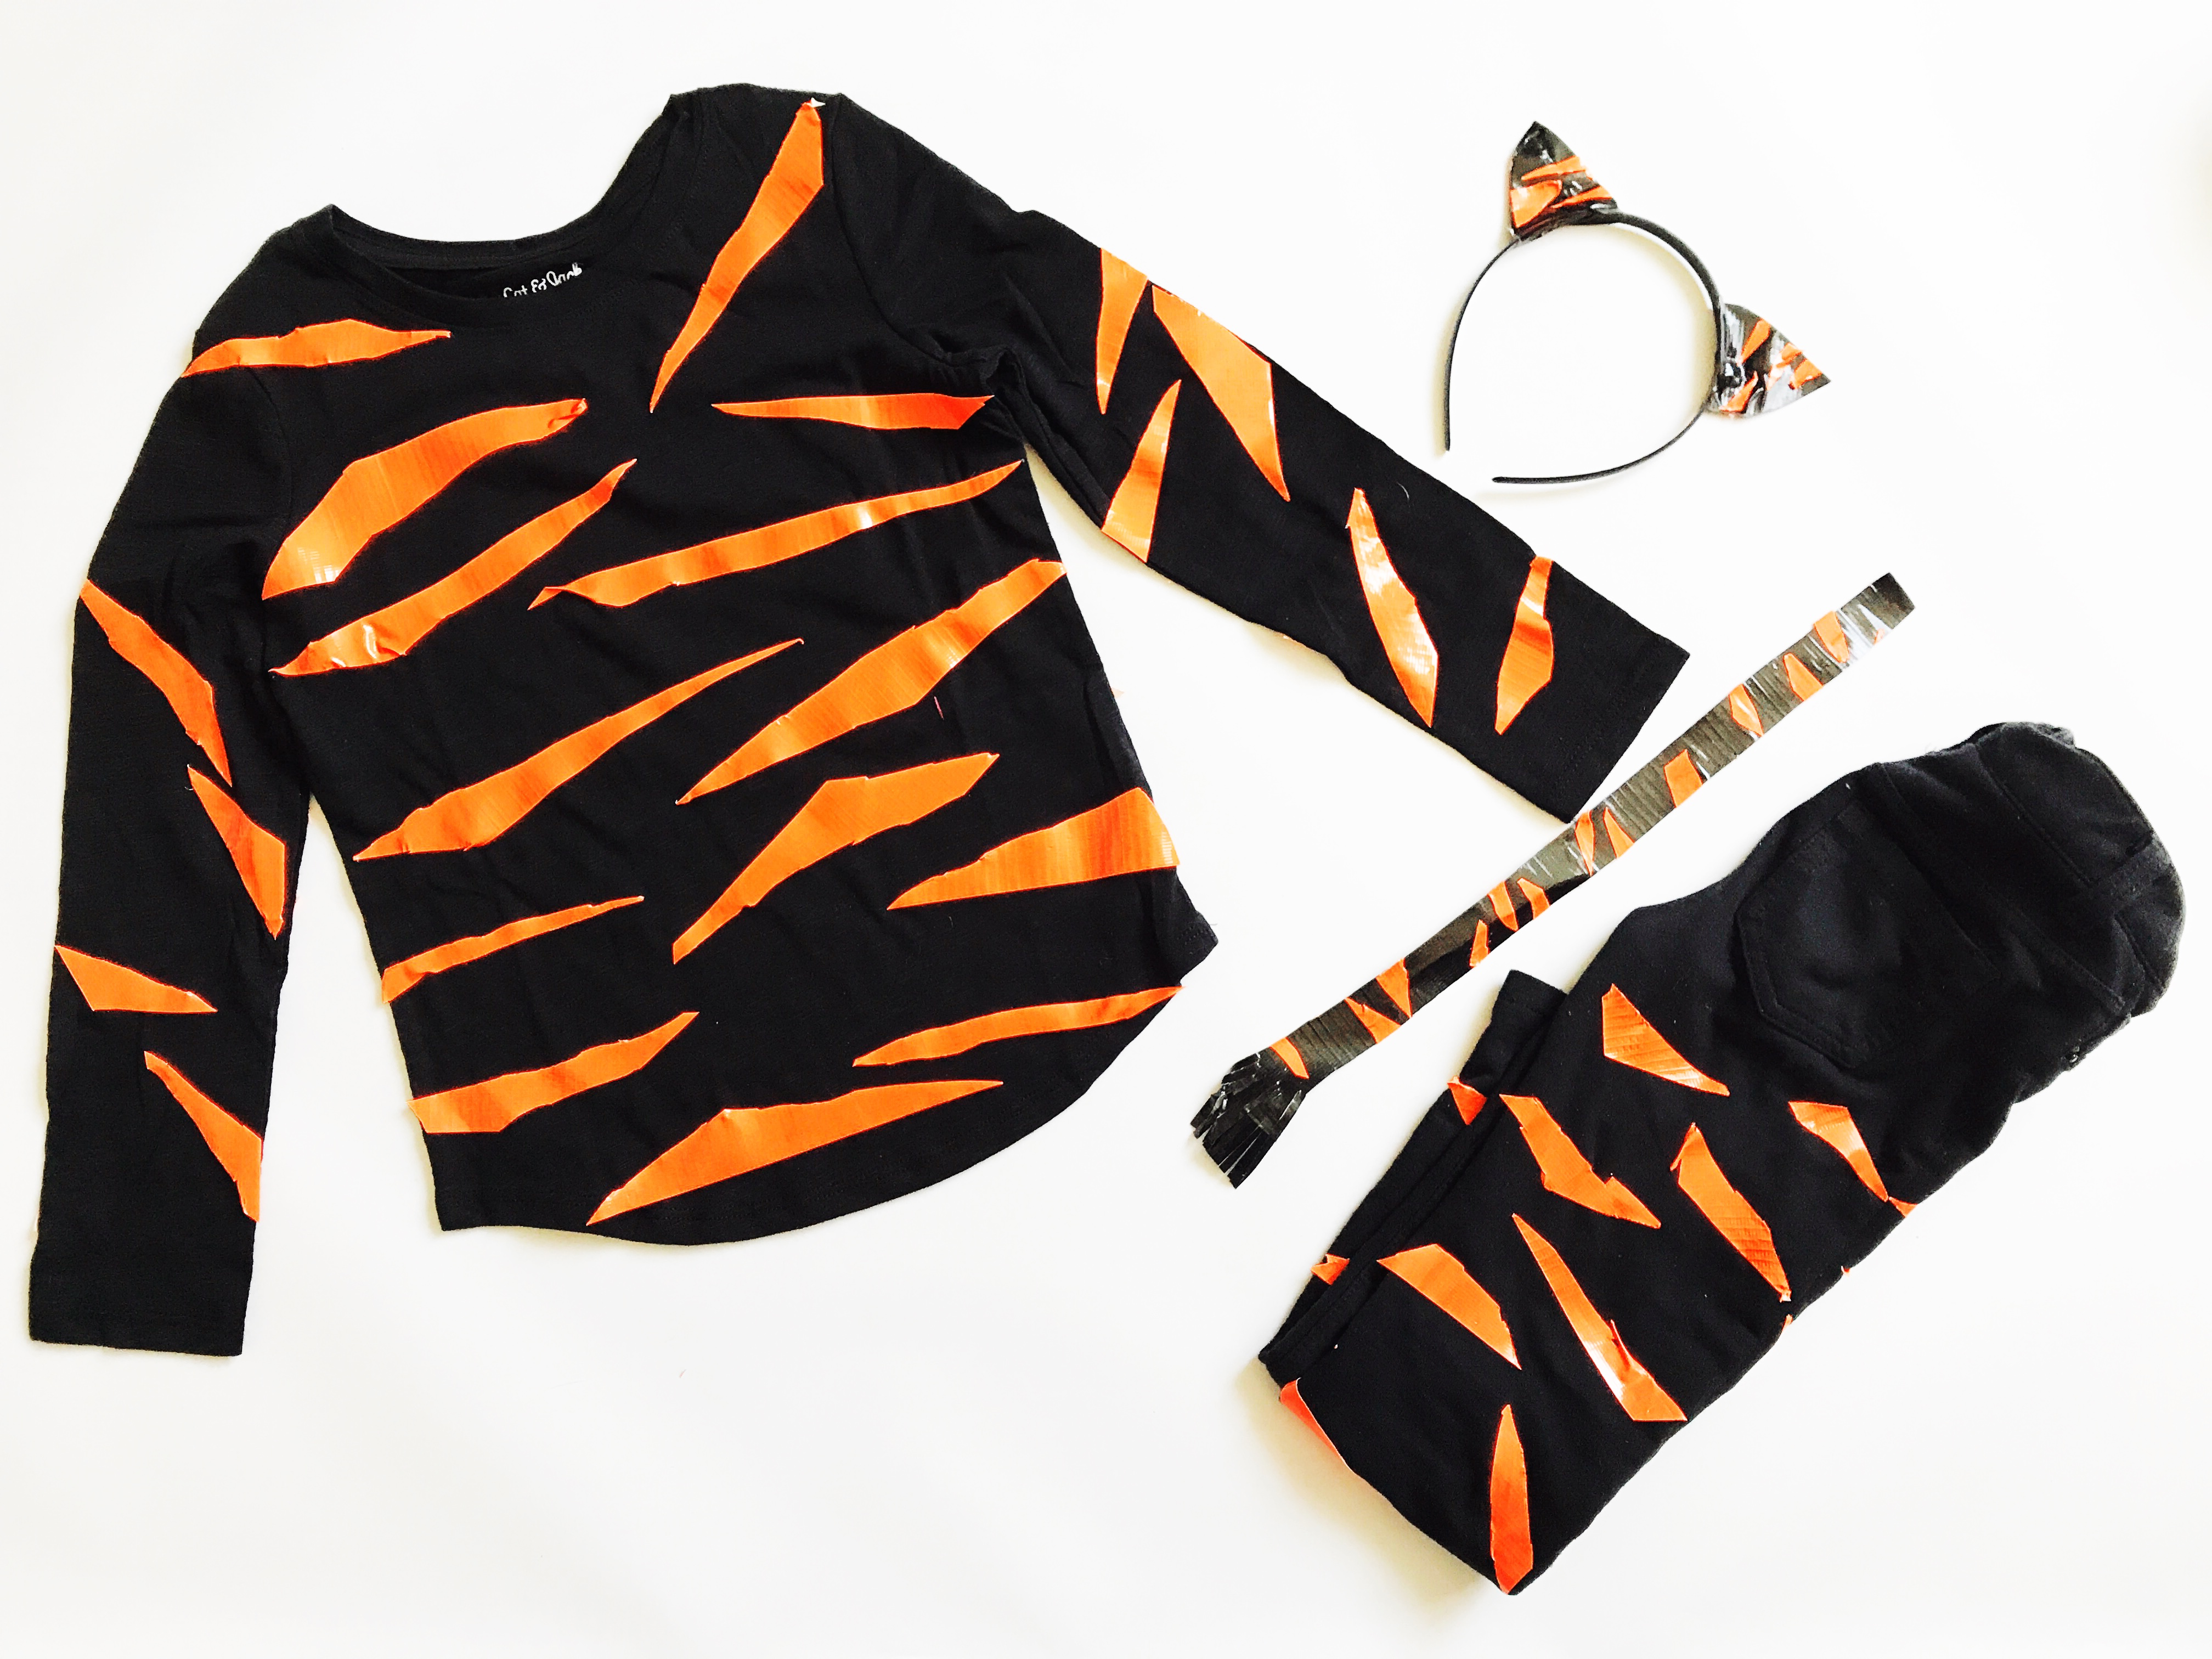 Diy tiger halloween costume duck tape babiekins magazine diy tiger costume babiekinsmag tiger duck tape costume solutioingenieria Images